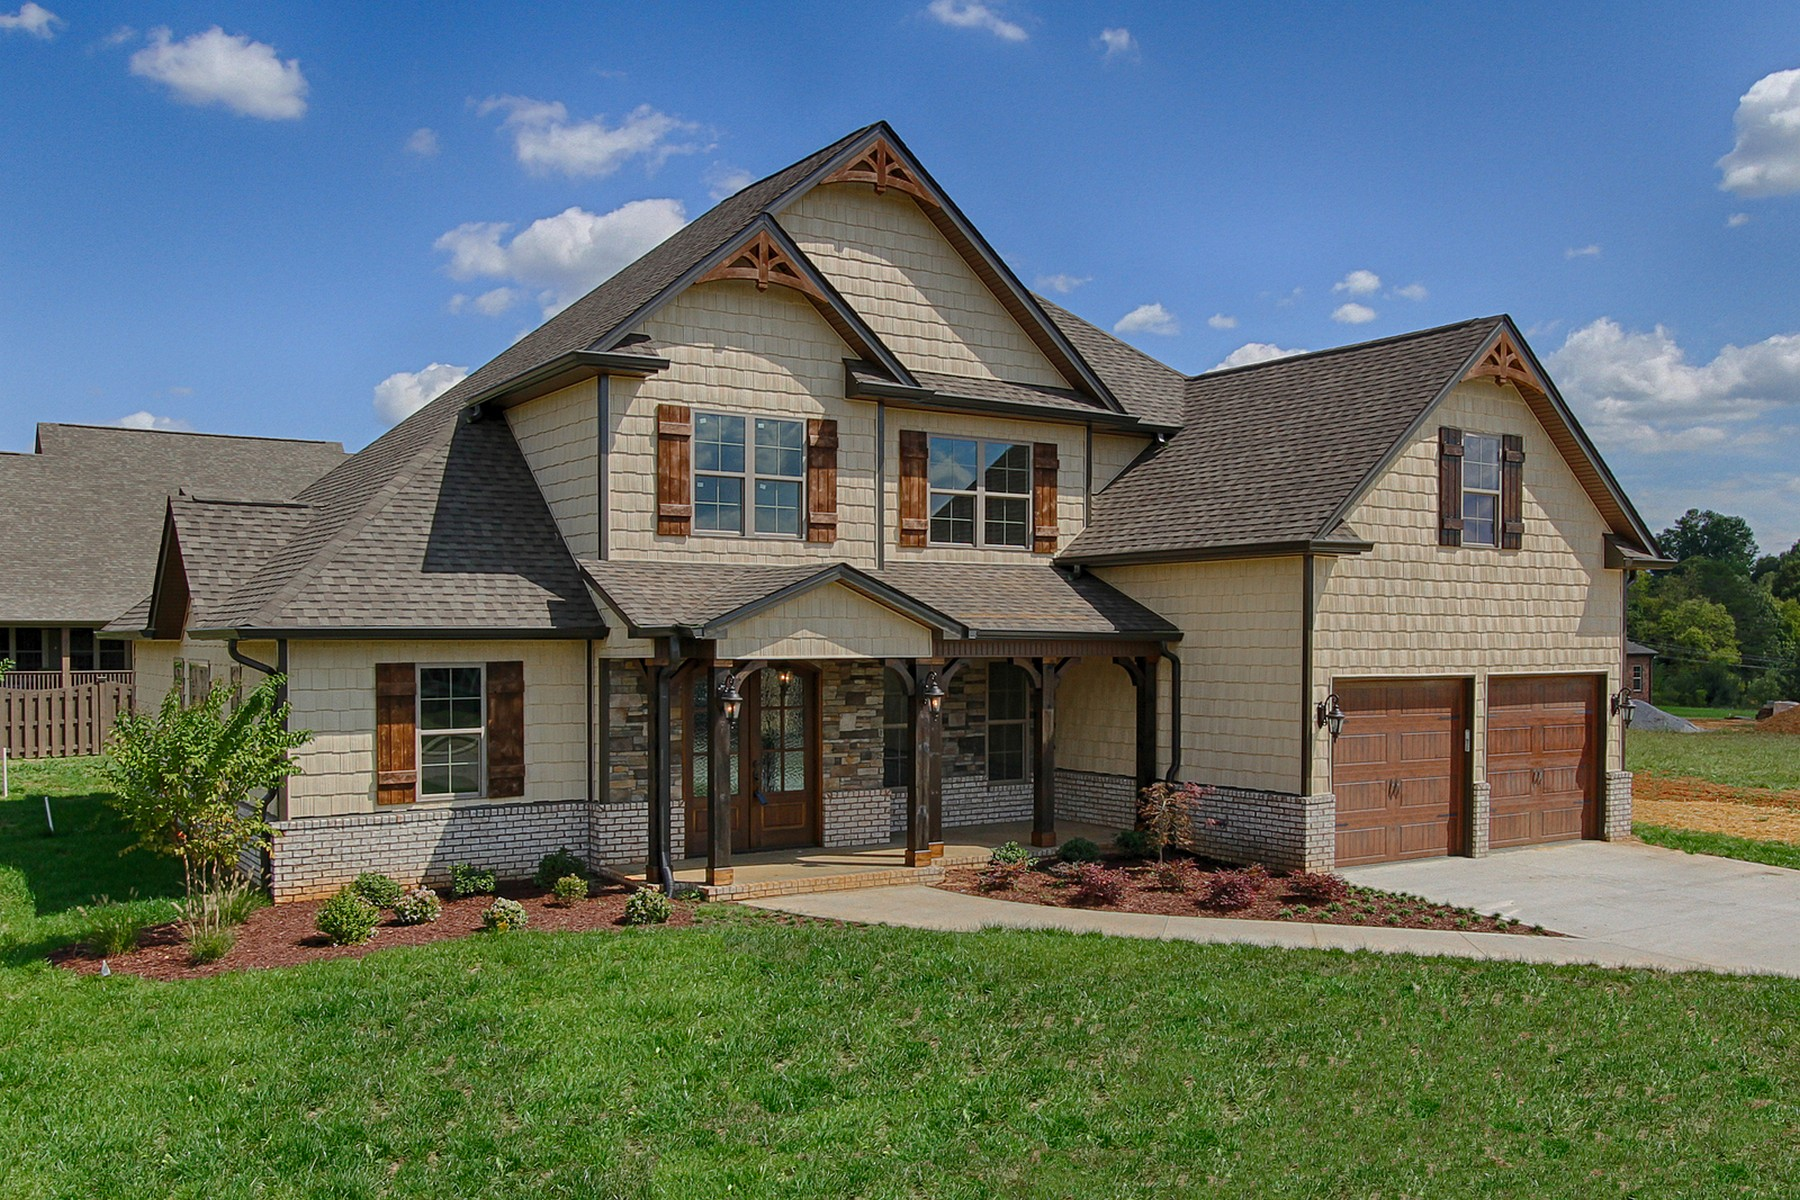 단독 가정 주택 용 매매 에 New Construction in Holland Springs 128 Stone Drive Maryville, 테네시 37803 미국